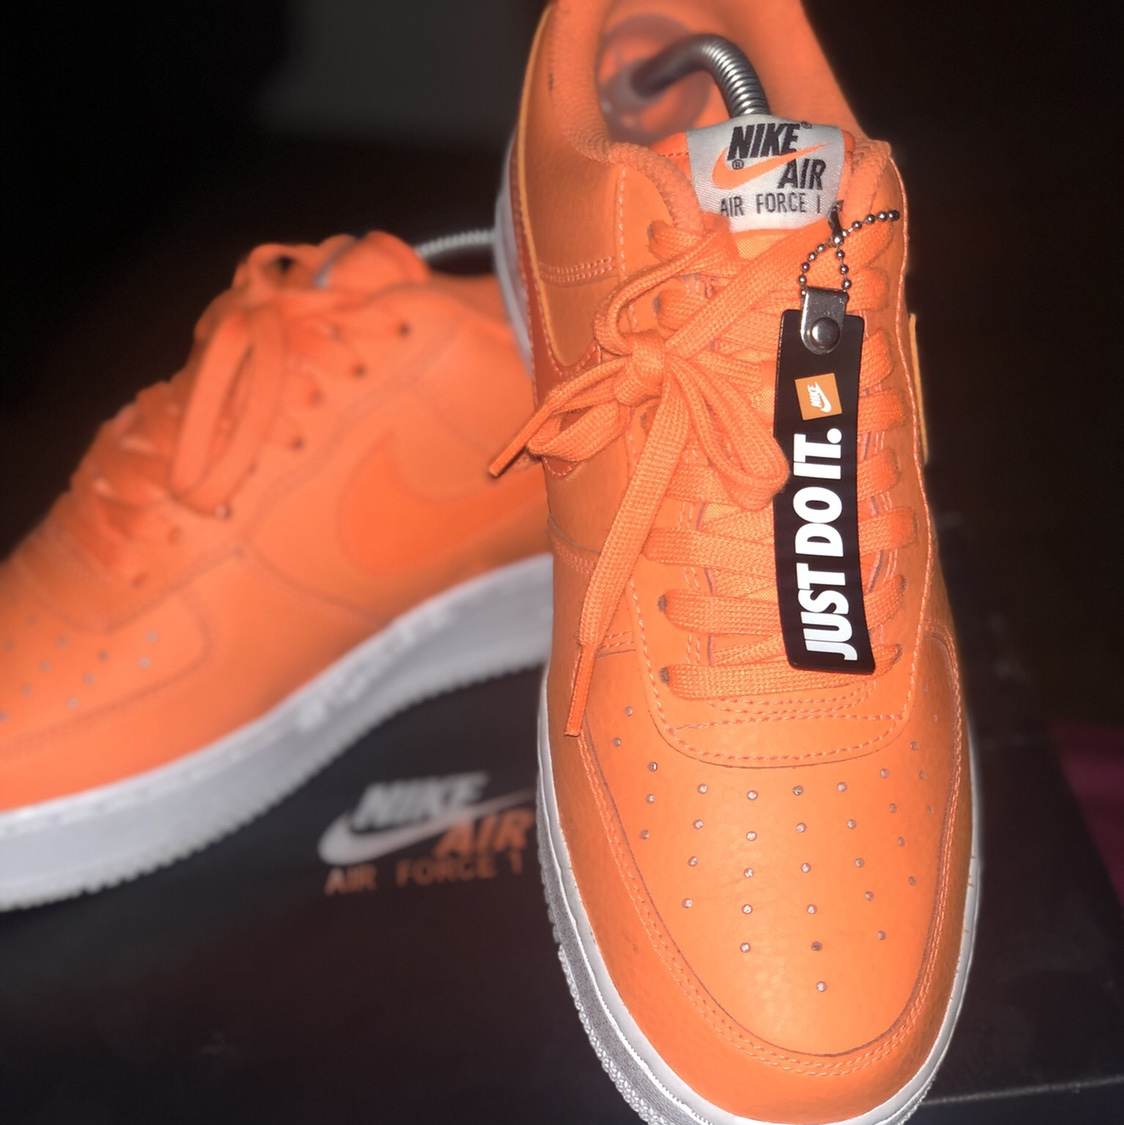 Nike Air Force 1 'JDI' Trainers in